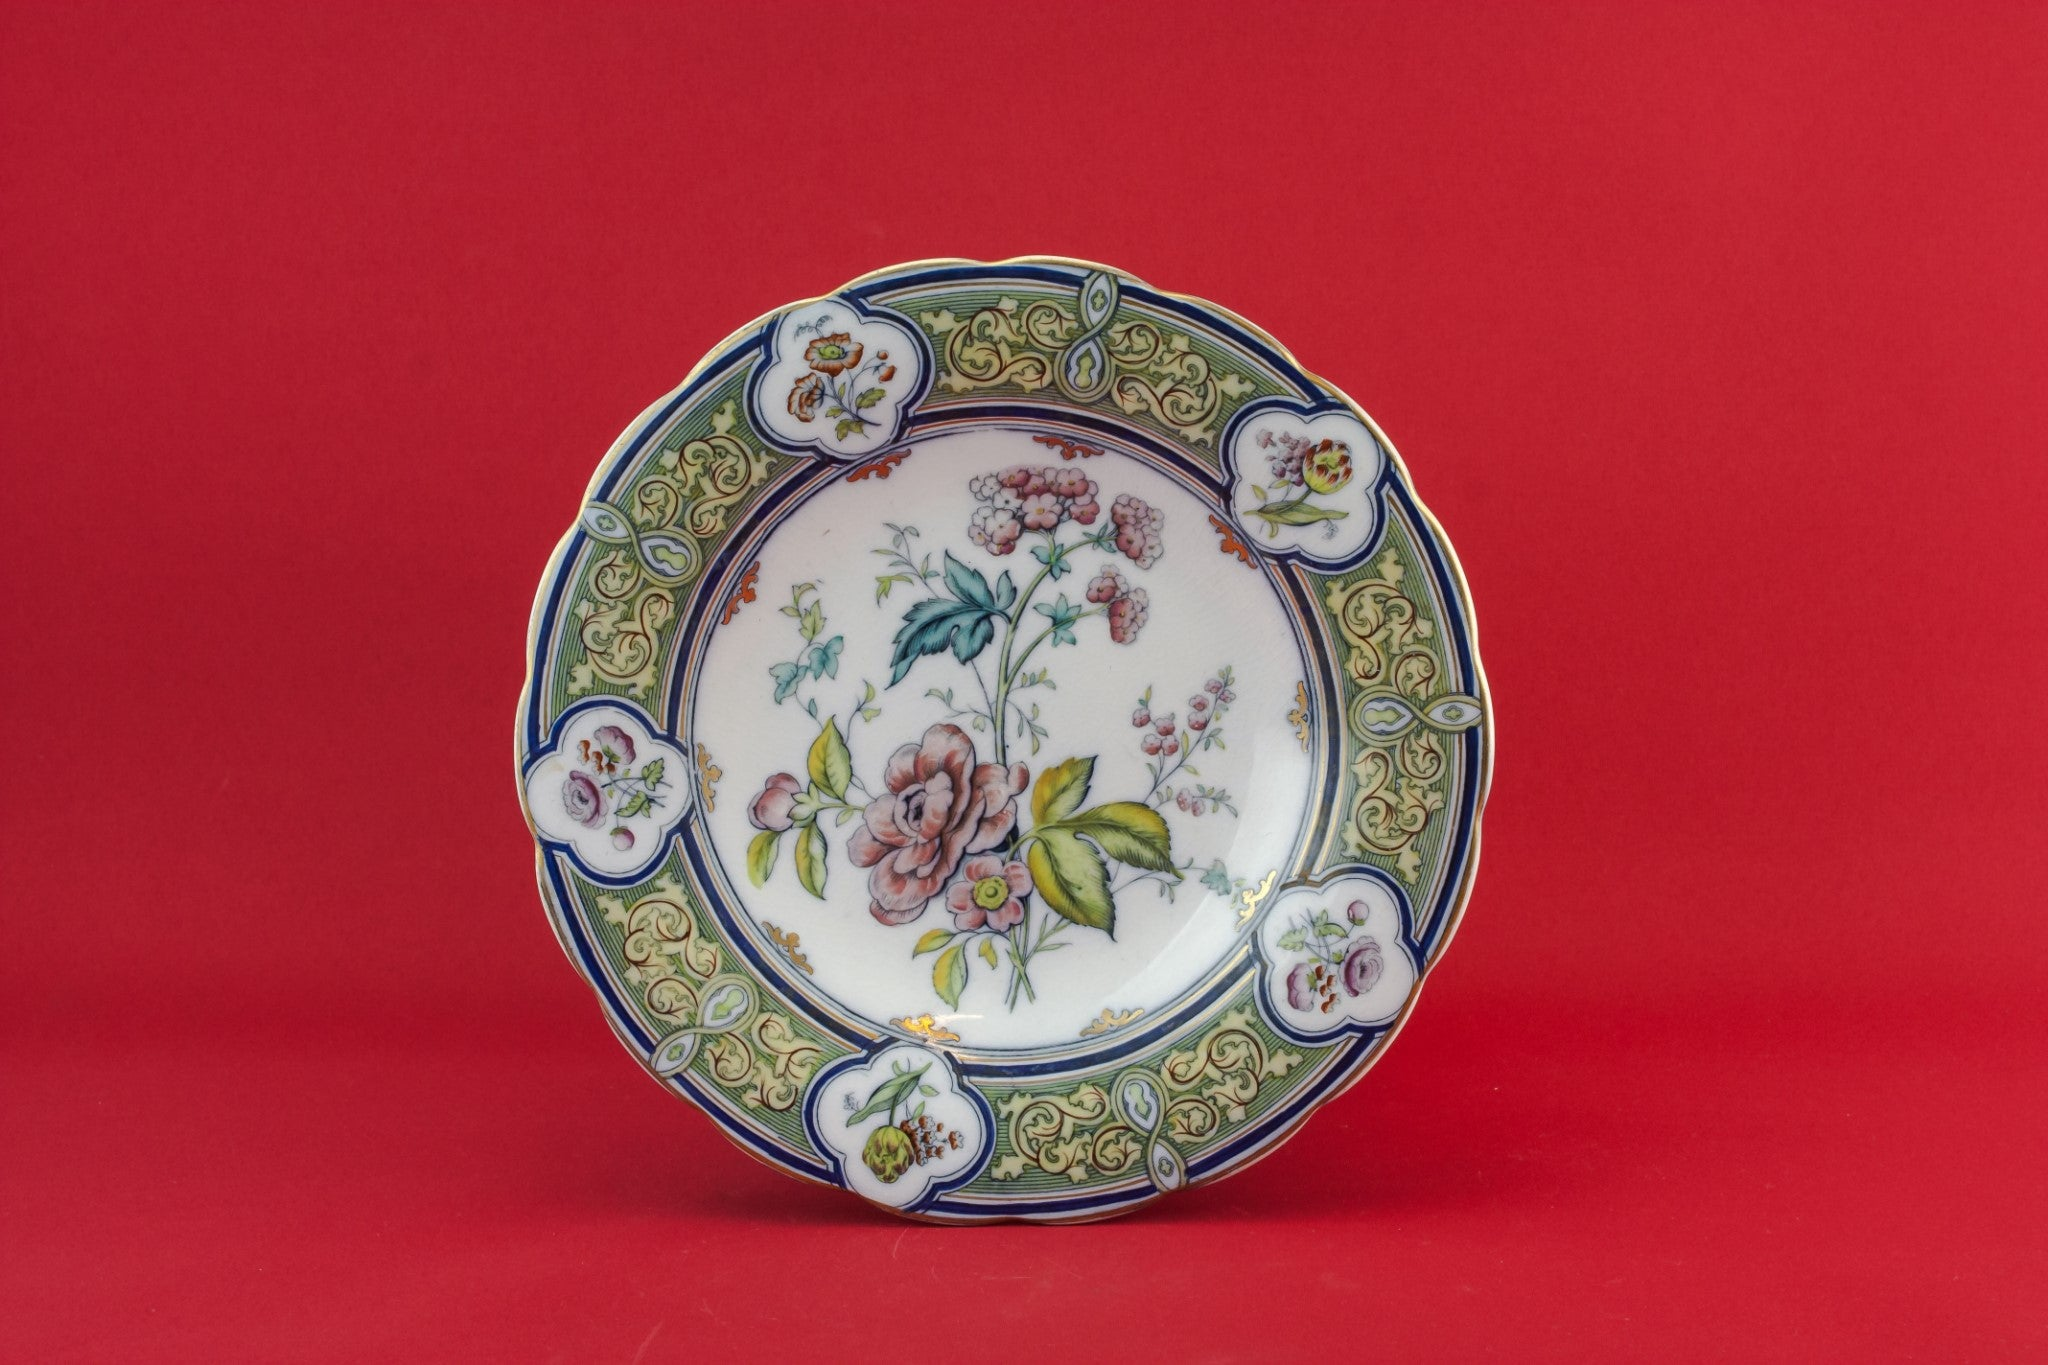 Gothic Revival serving dish